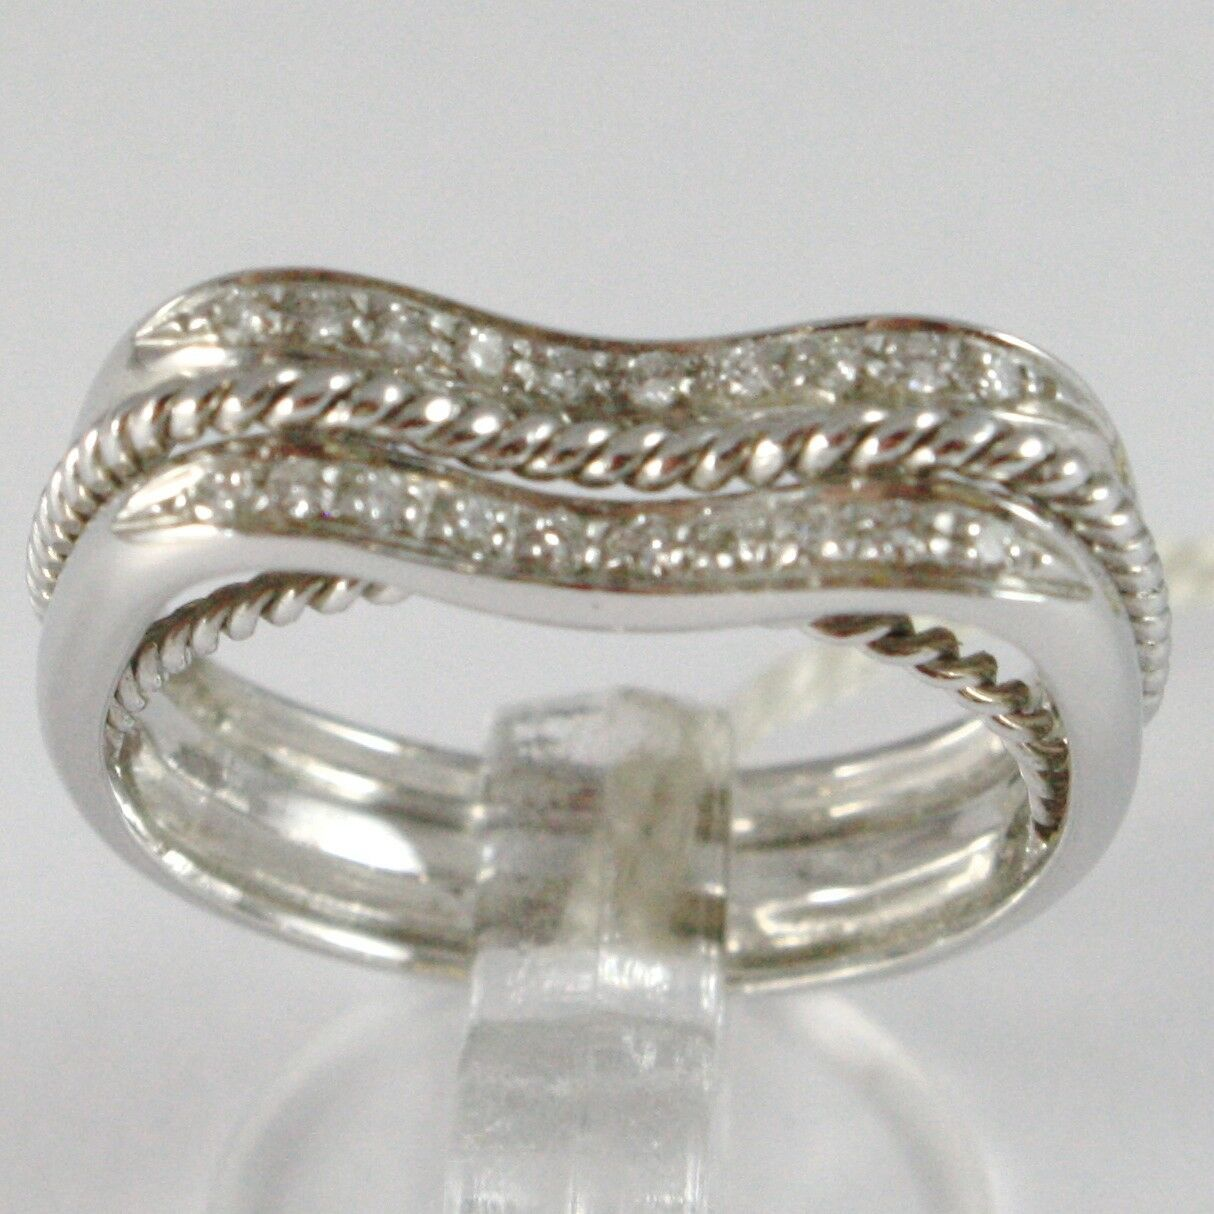 White Gold Ring 750 18K, Veretta Wavy, Double Row of Diamonds, Threaded